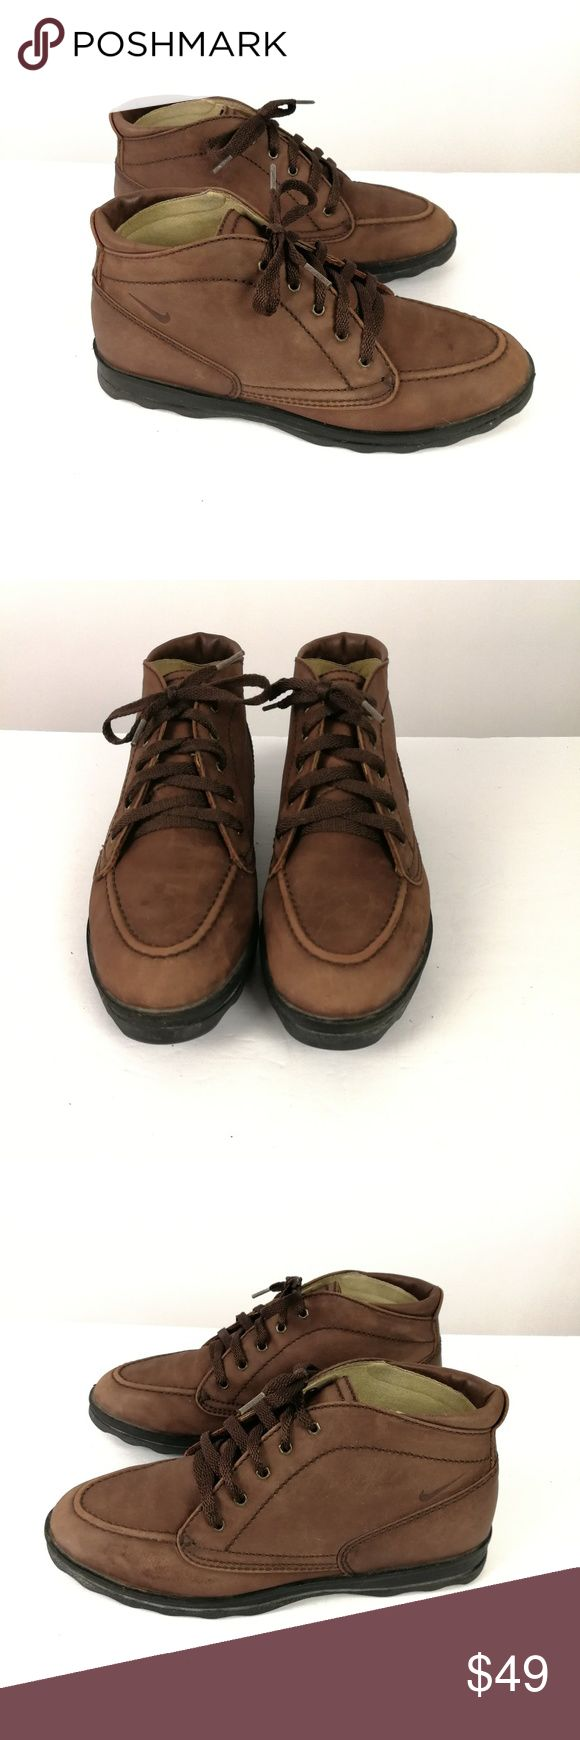 Nike Air Ankle Hiking Boots  Size 8.5 Leather Lace Nike Air Ankle Hiking Boots  Size 8.5  Leather Upper  Man-made Sole  Brown  Lace-up  Very Good Condition  Light wear Nike Shoes Ankle Boots & Booties